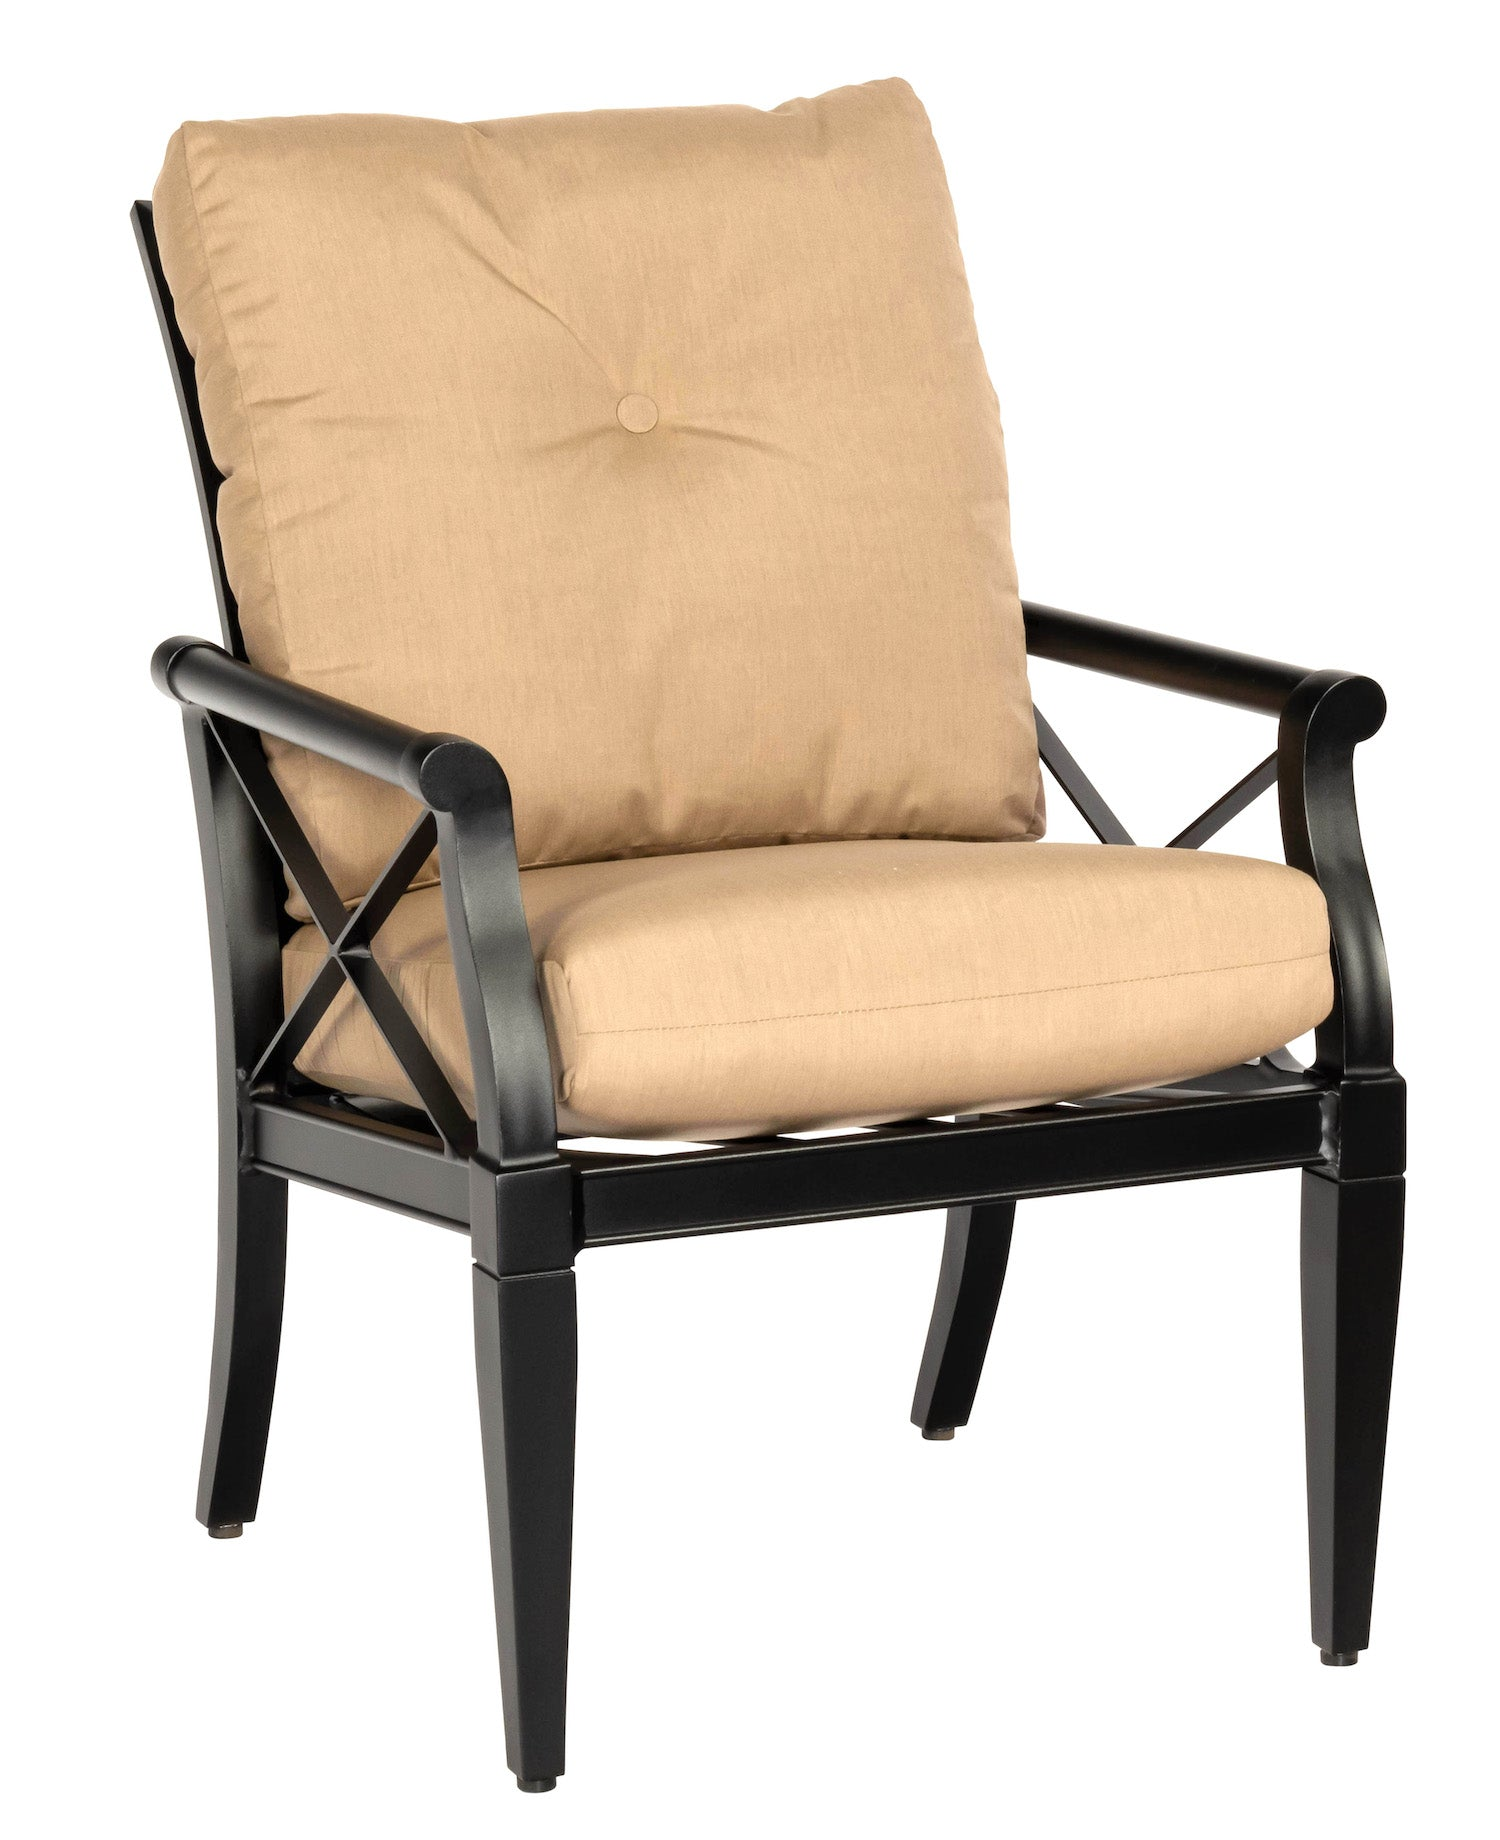 Andover Dining Arm Chair- Item 510401